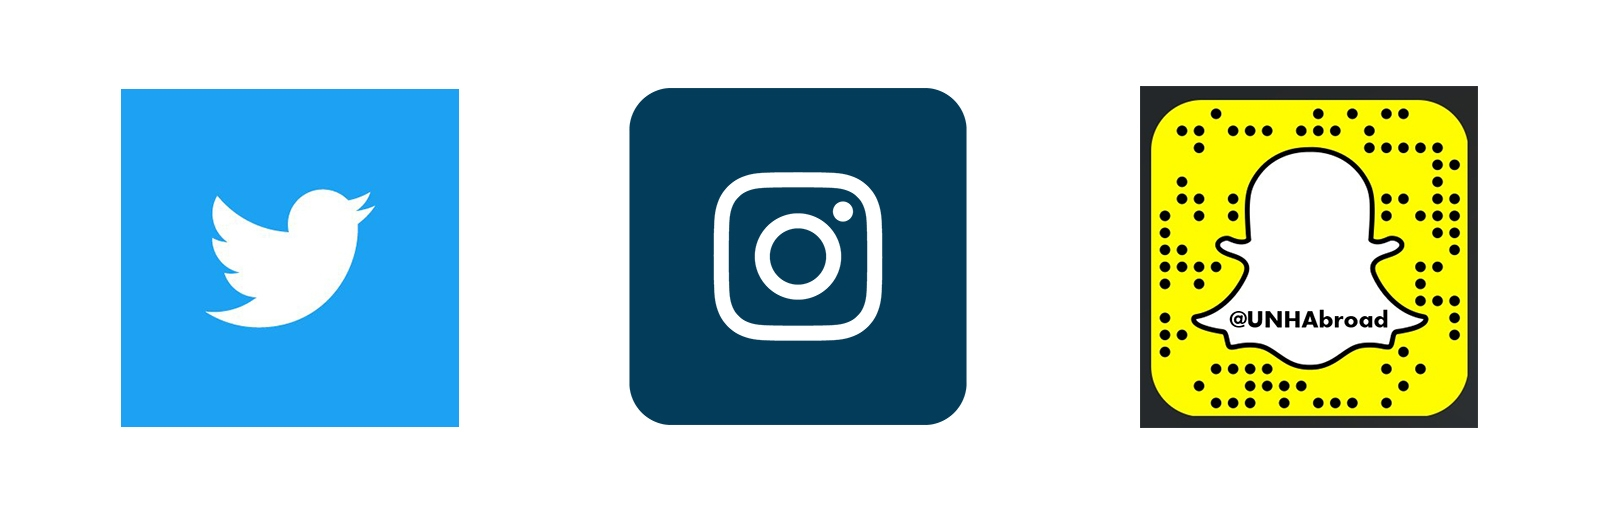 Twitter, Instagram, and Snapchat icons